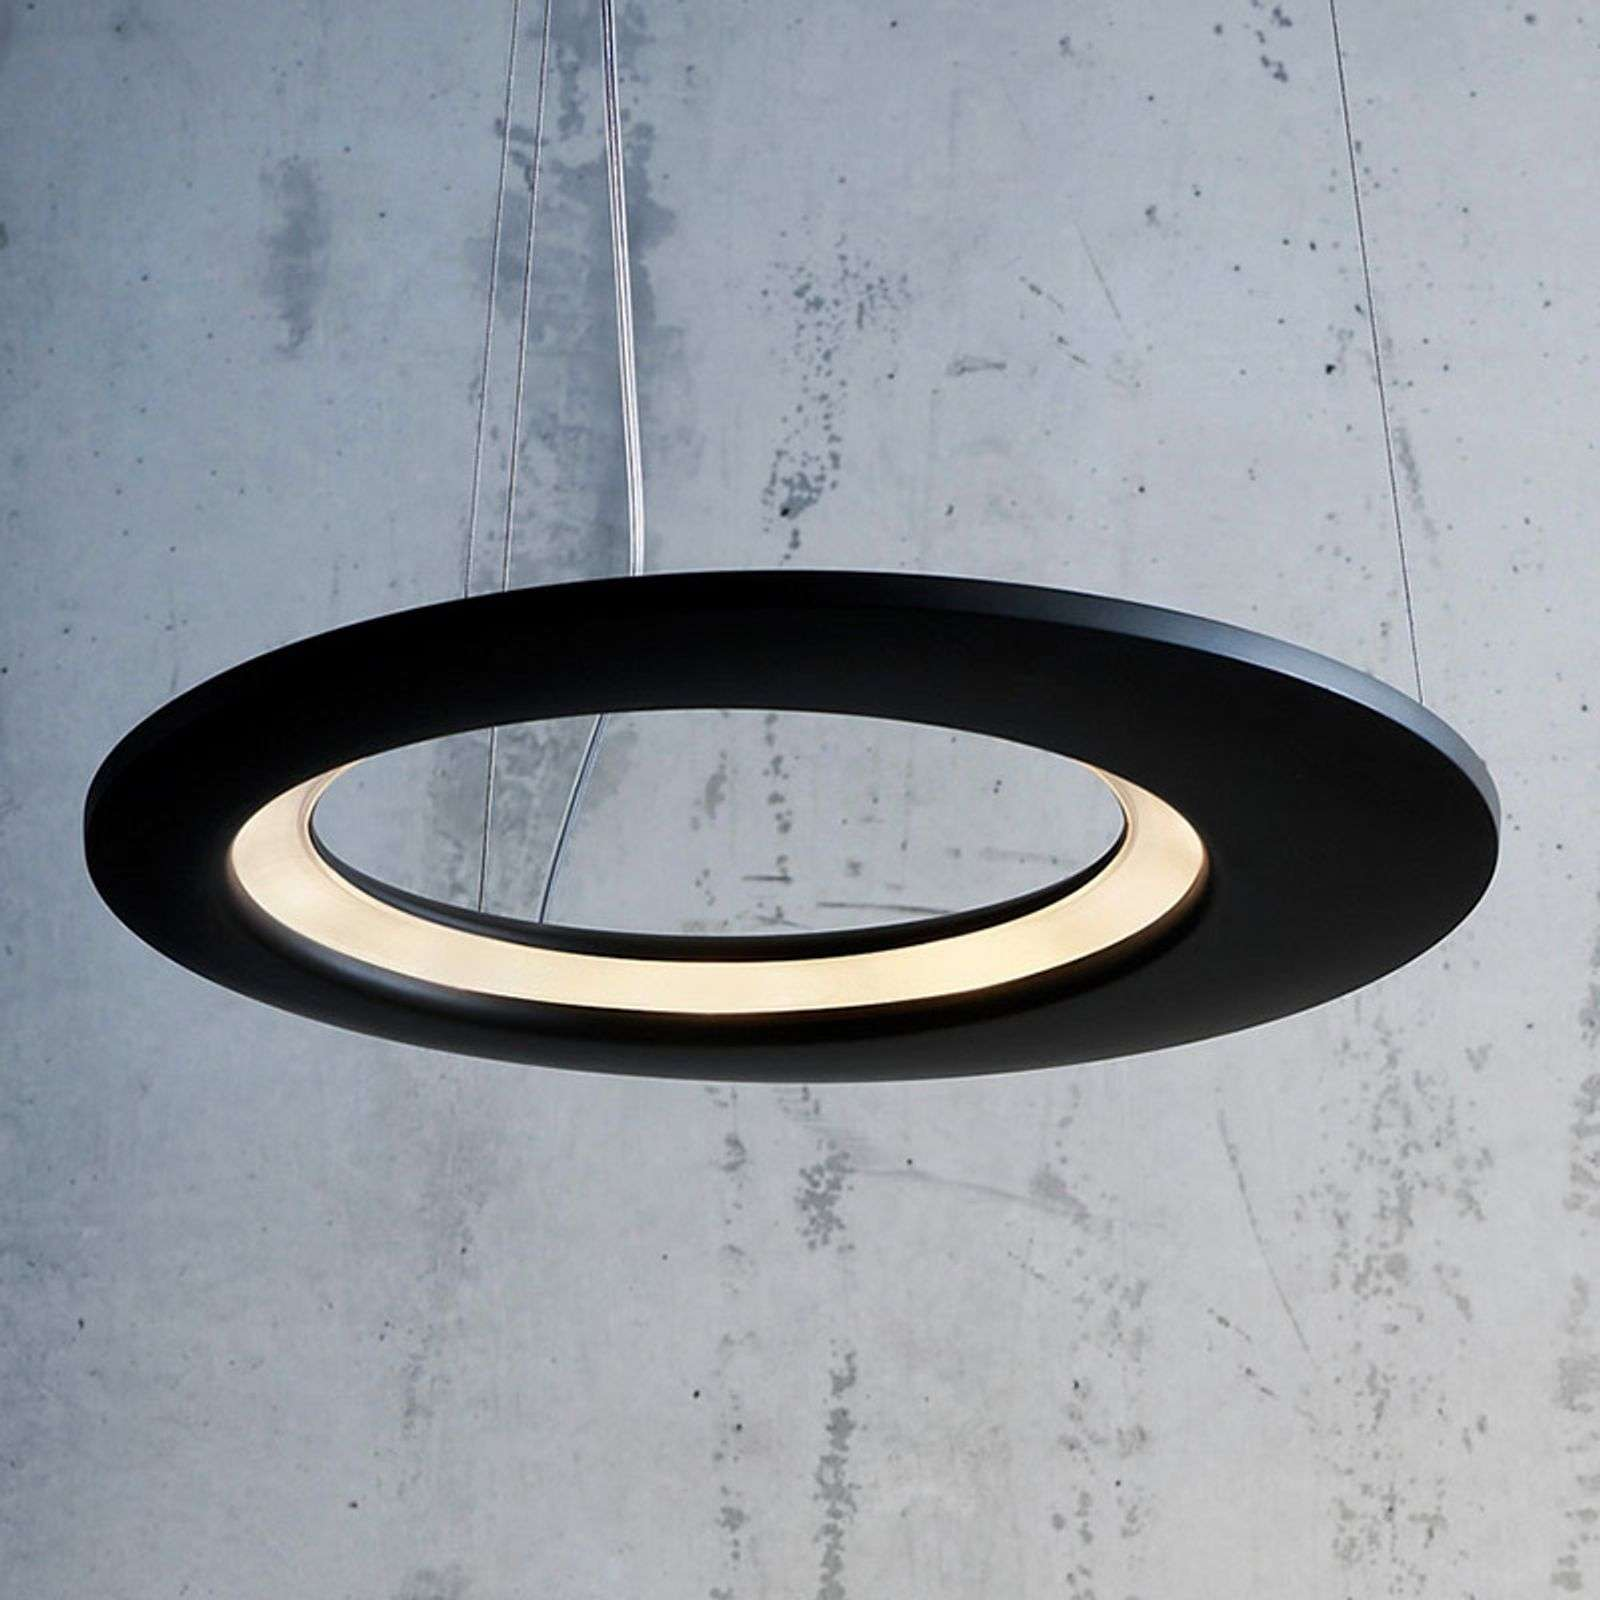 Suspension de designer LED Ecliptic noir 65